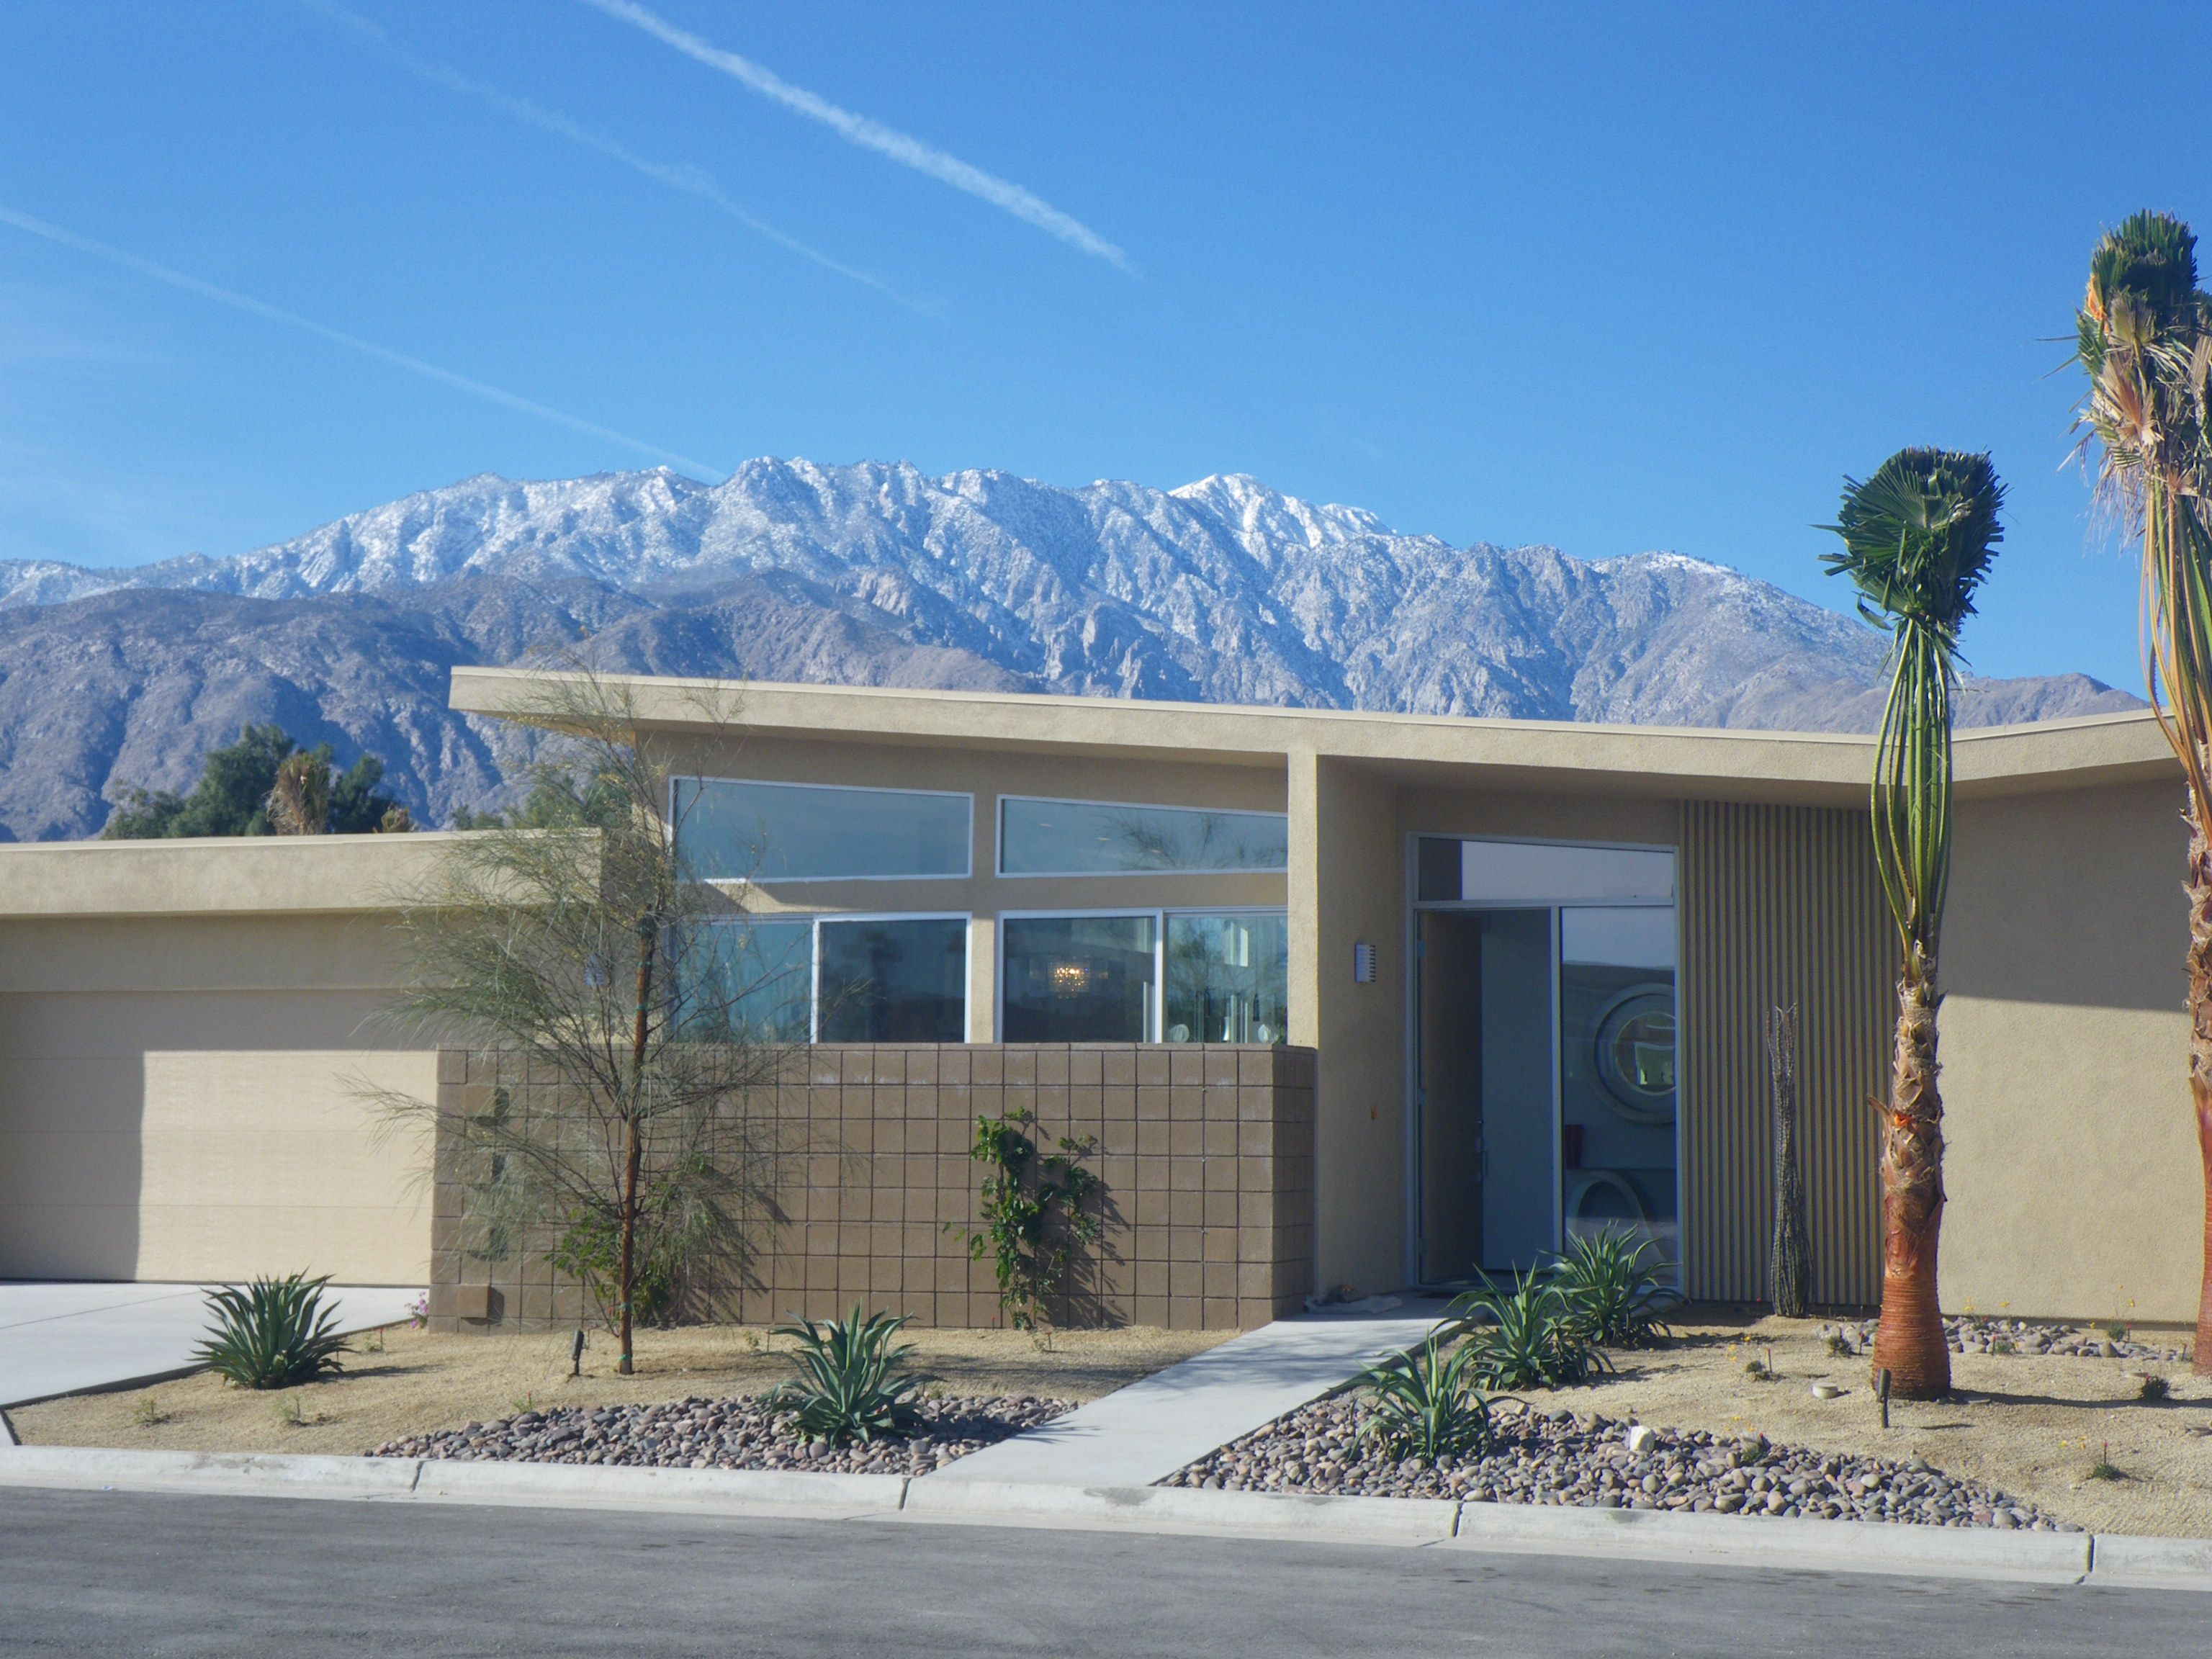 Palm springs modern homes google search modern homes for New modern homes palm springs